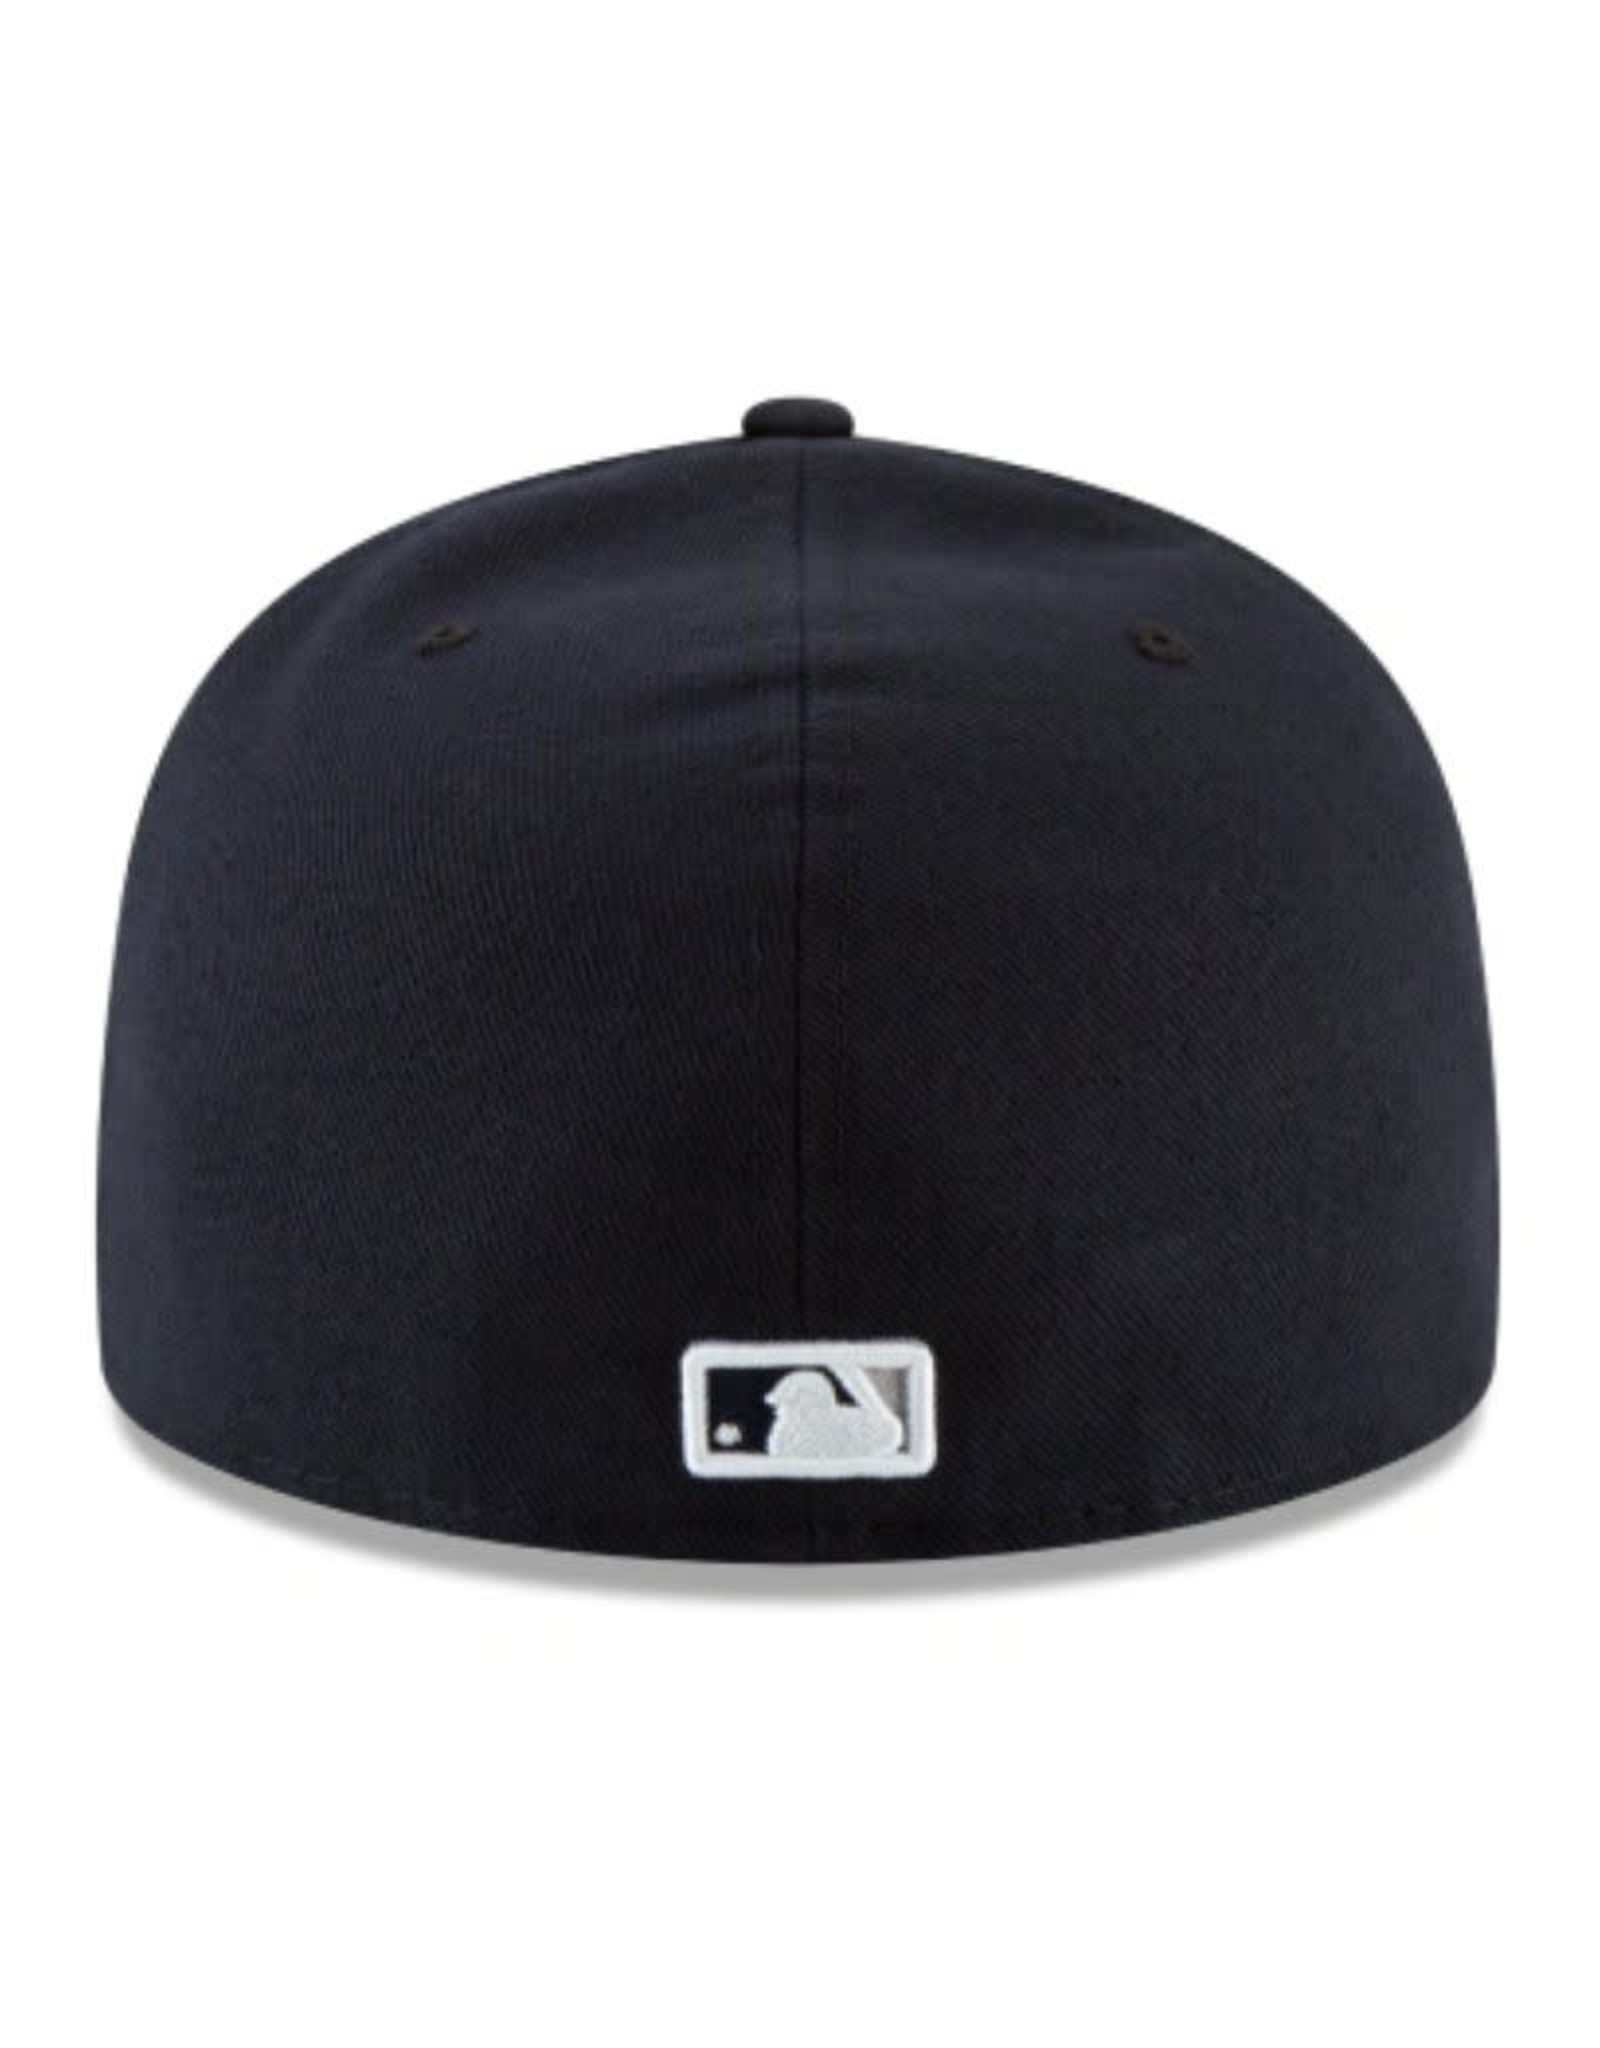 New Era On-Field Authentic 59FIFTY Home Hat New York Yankees Navy